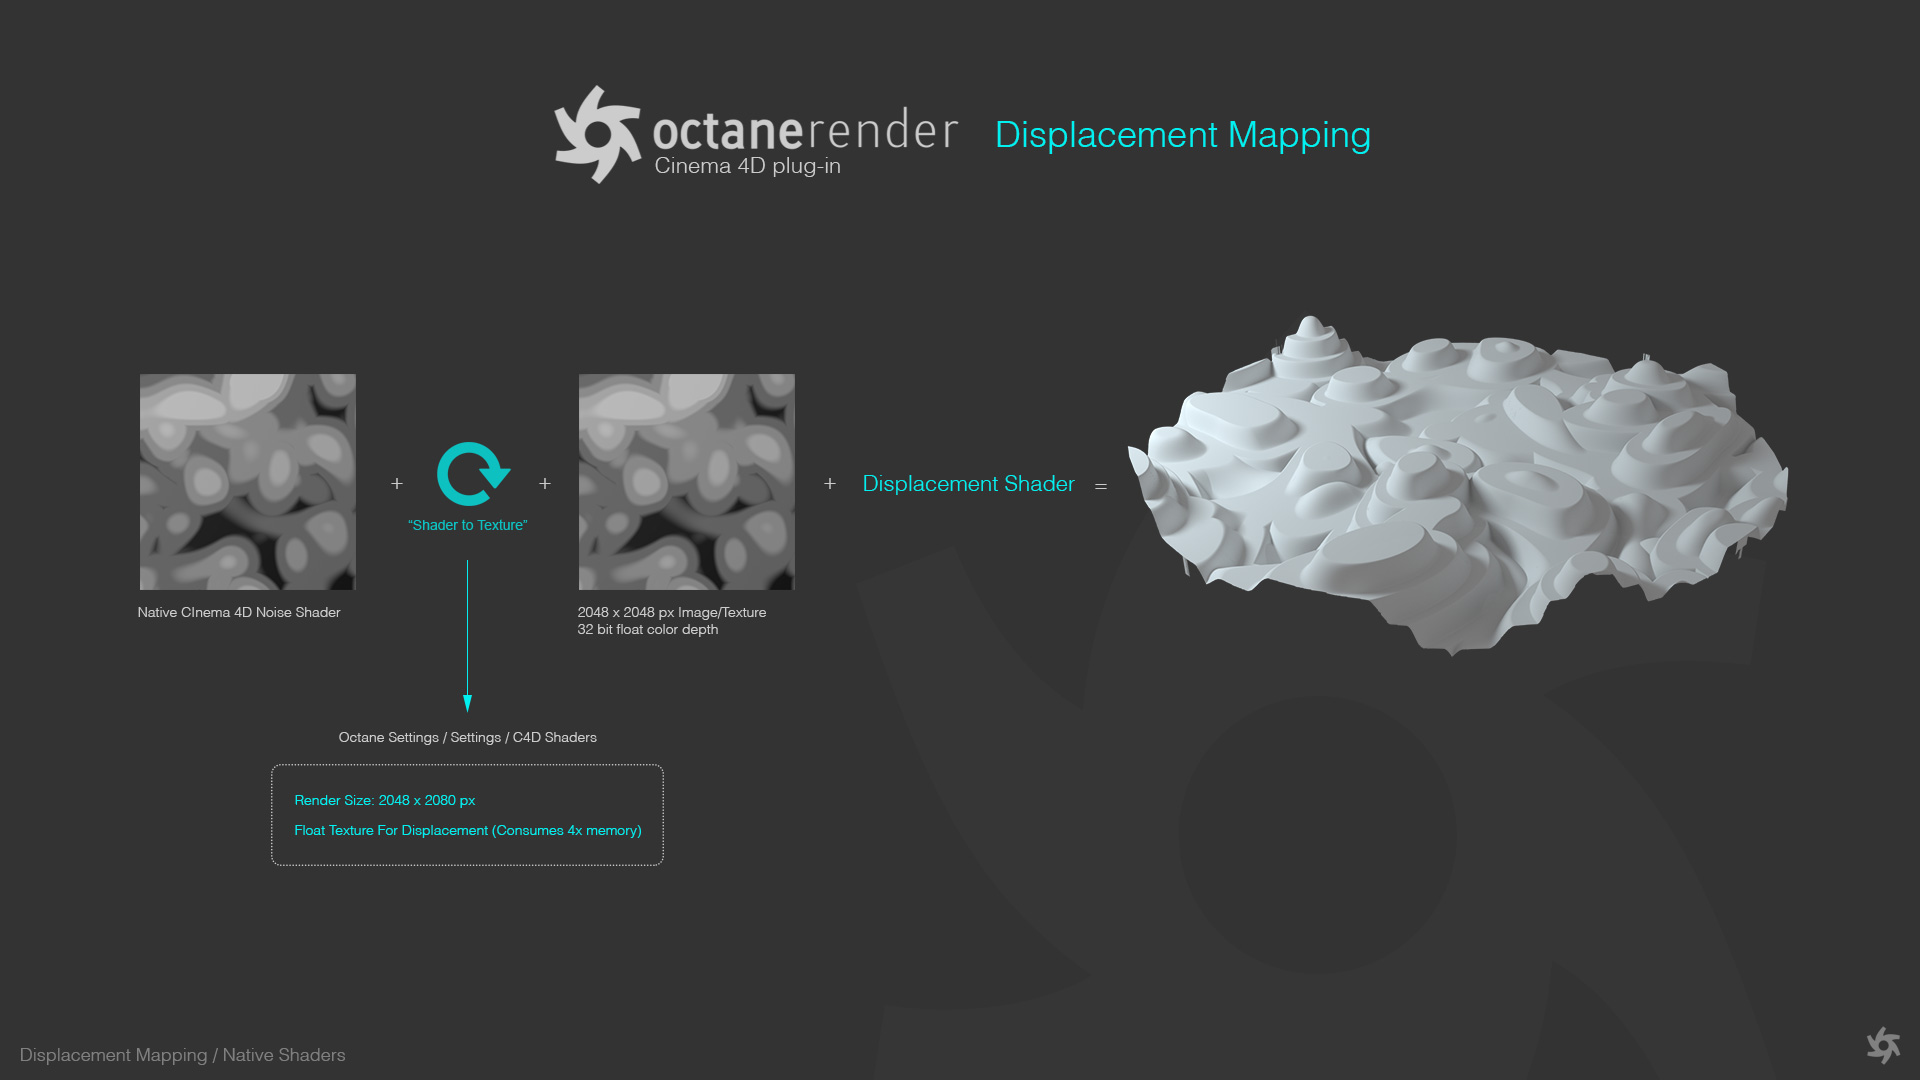 Octane for cinema 4d 6 displacement mapping inlifethrill designs share gumiabroncs Gallery